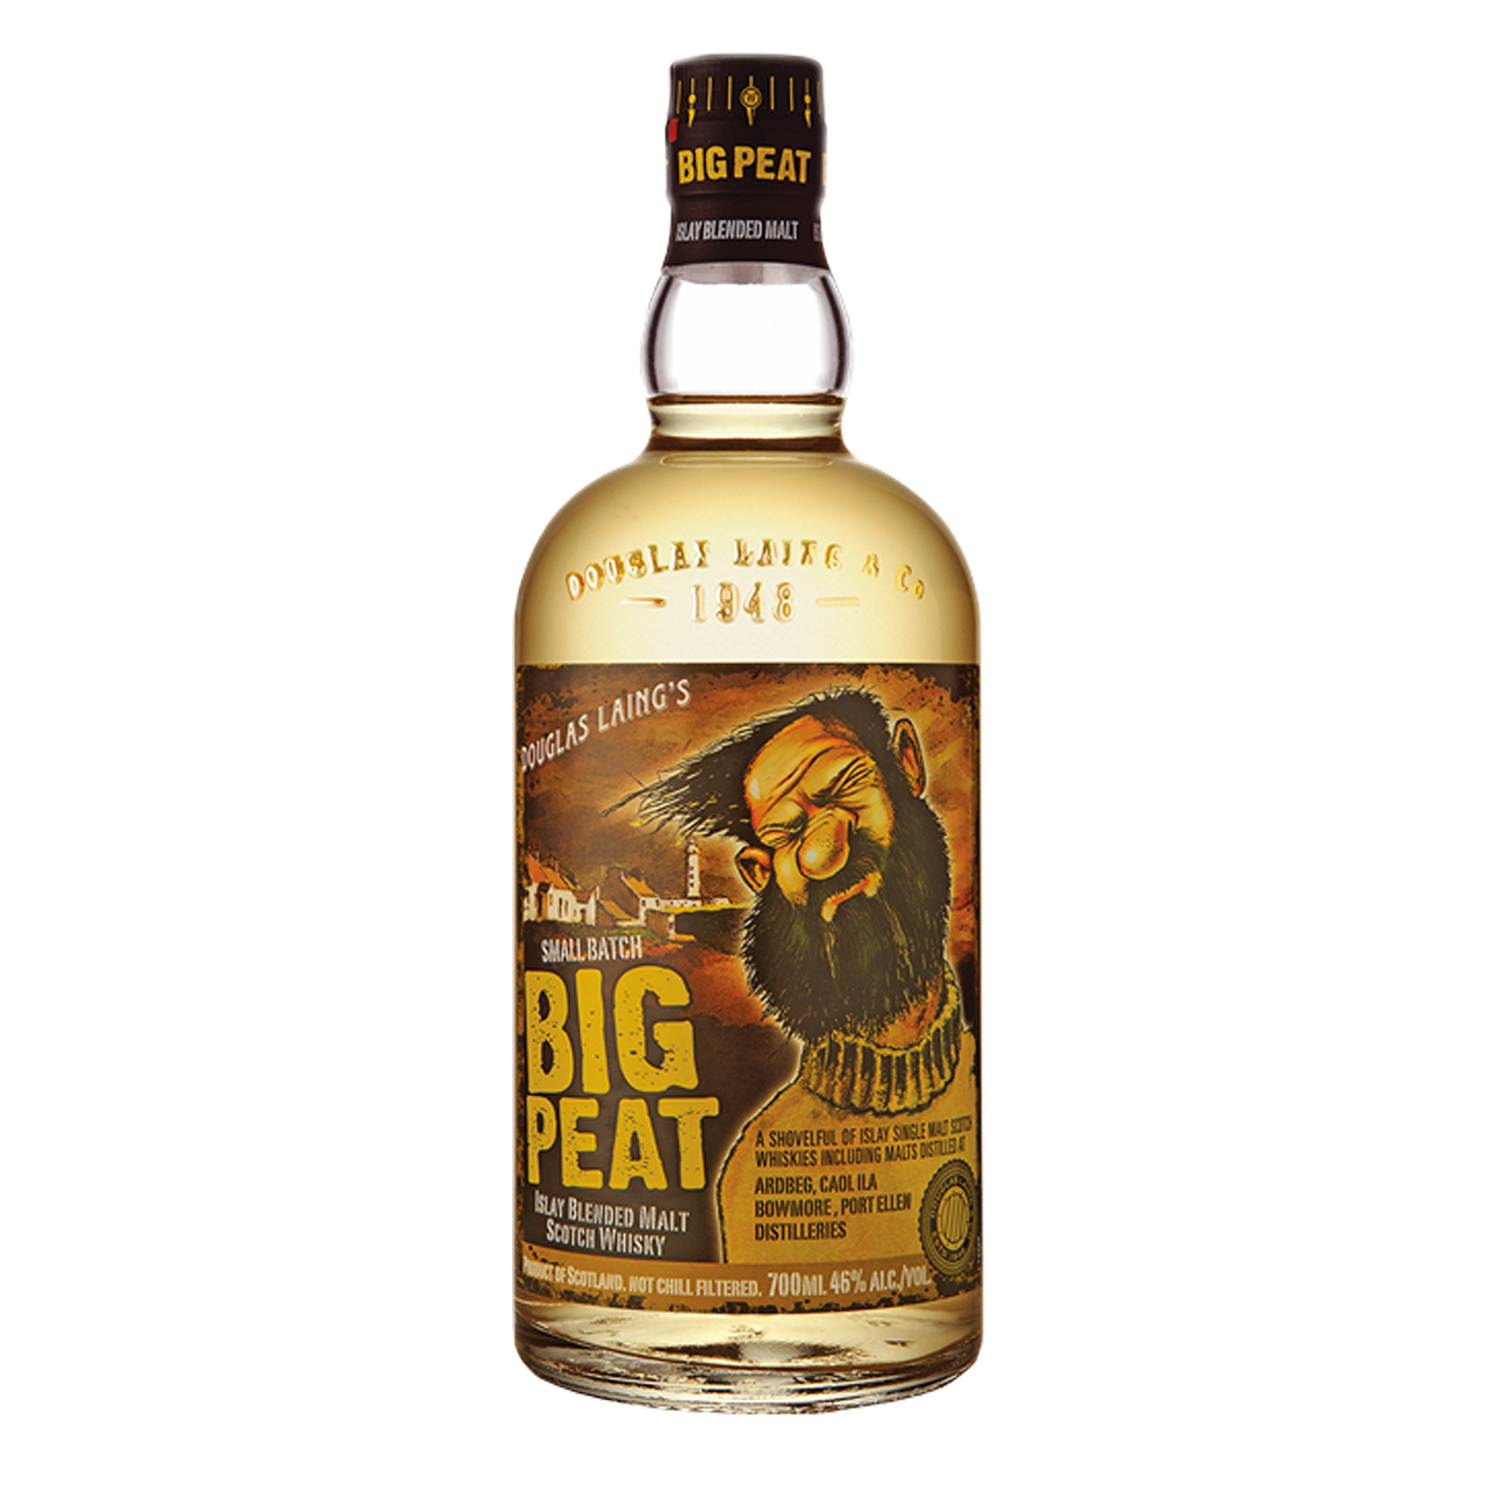 Whisky - Big Peat - Blended Malt - Tourbé - 70cl - 46°